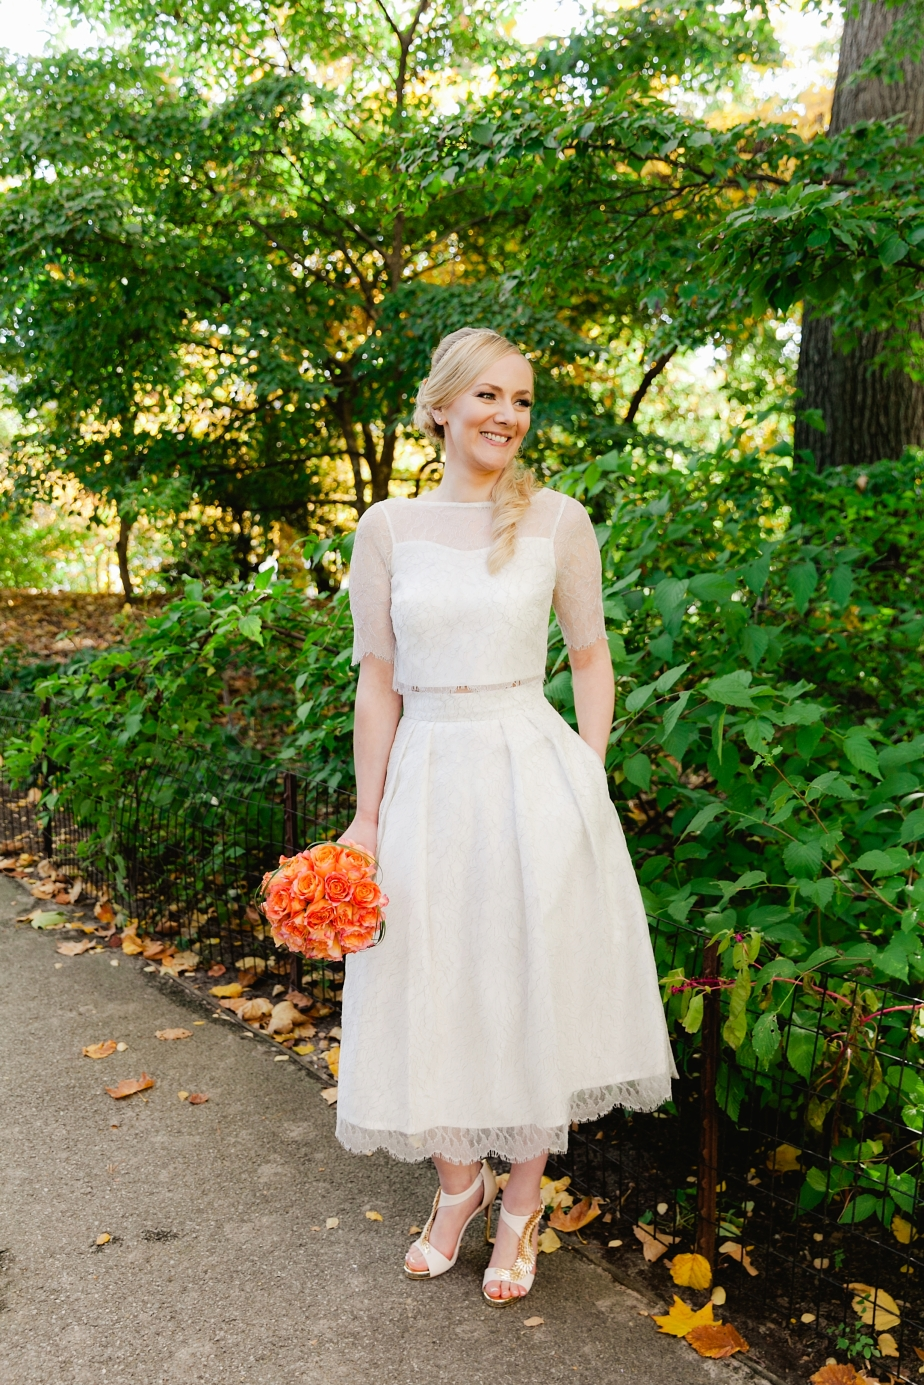 centralpark_ladiespavilion_wedding_SD-264